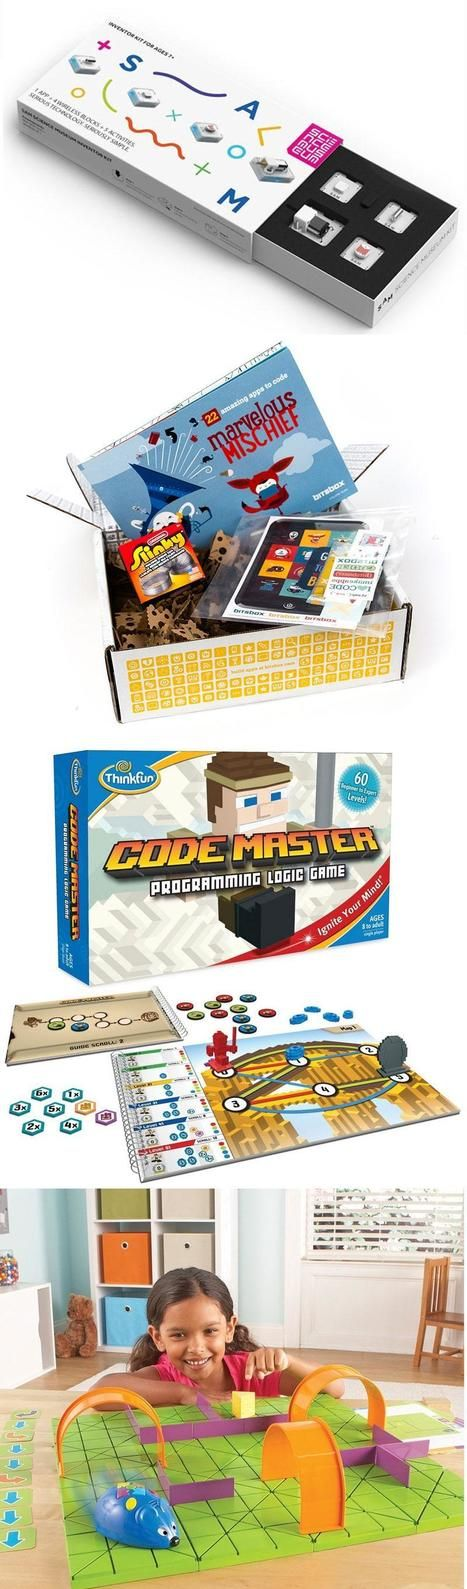 Best coding toys and programming games for kids | iPads in Education | Scoop.it